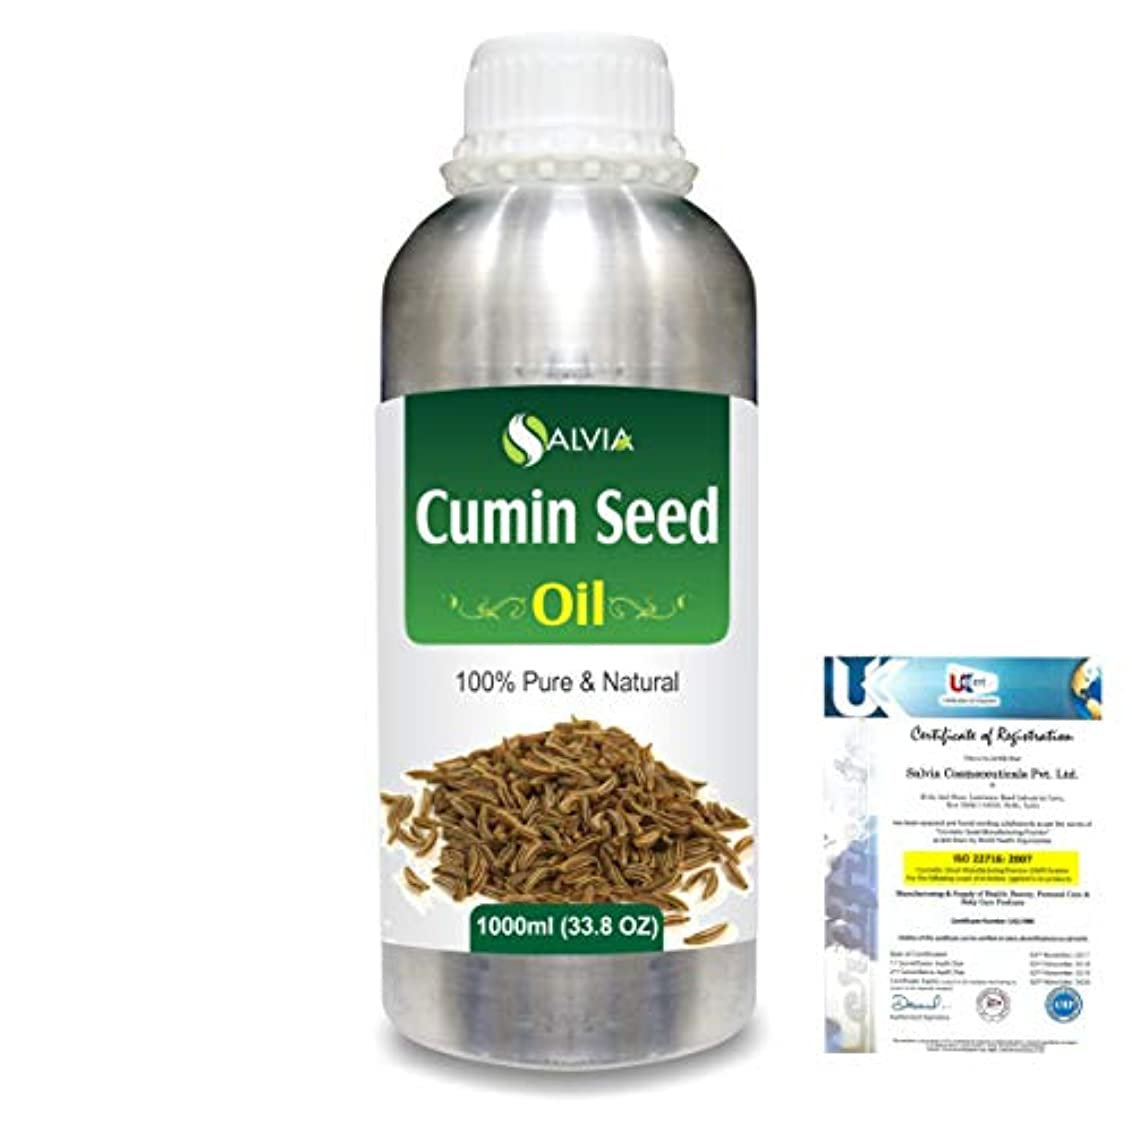 仕事に行く組み合わせ効能あるCumin Seed (Cuminum Cyminum) 100% Pure Natural Carrier Oil 1000ml/33.8fl.oz.